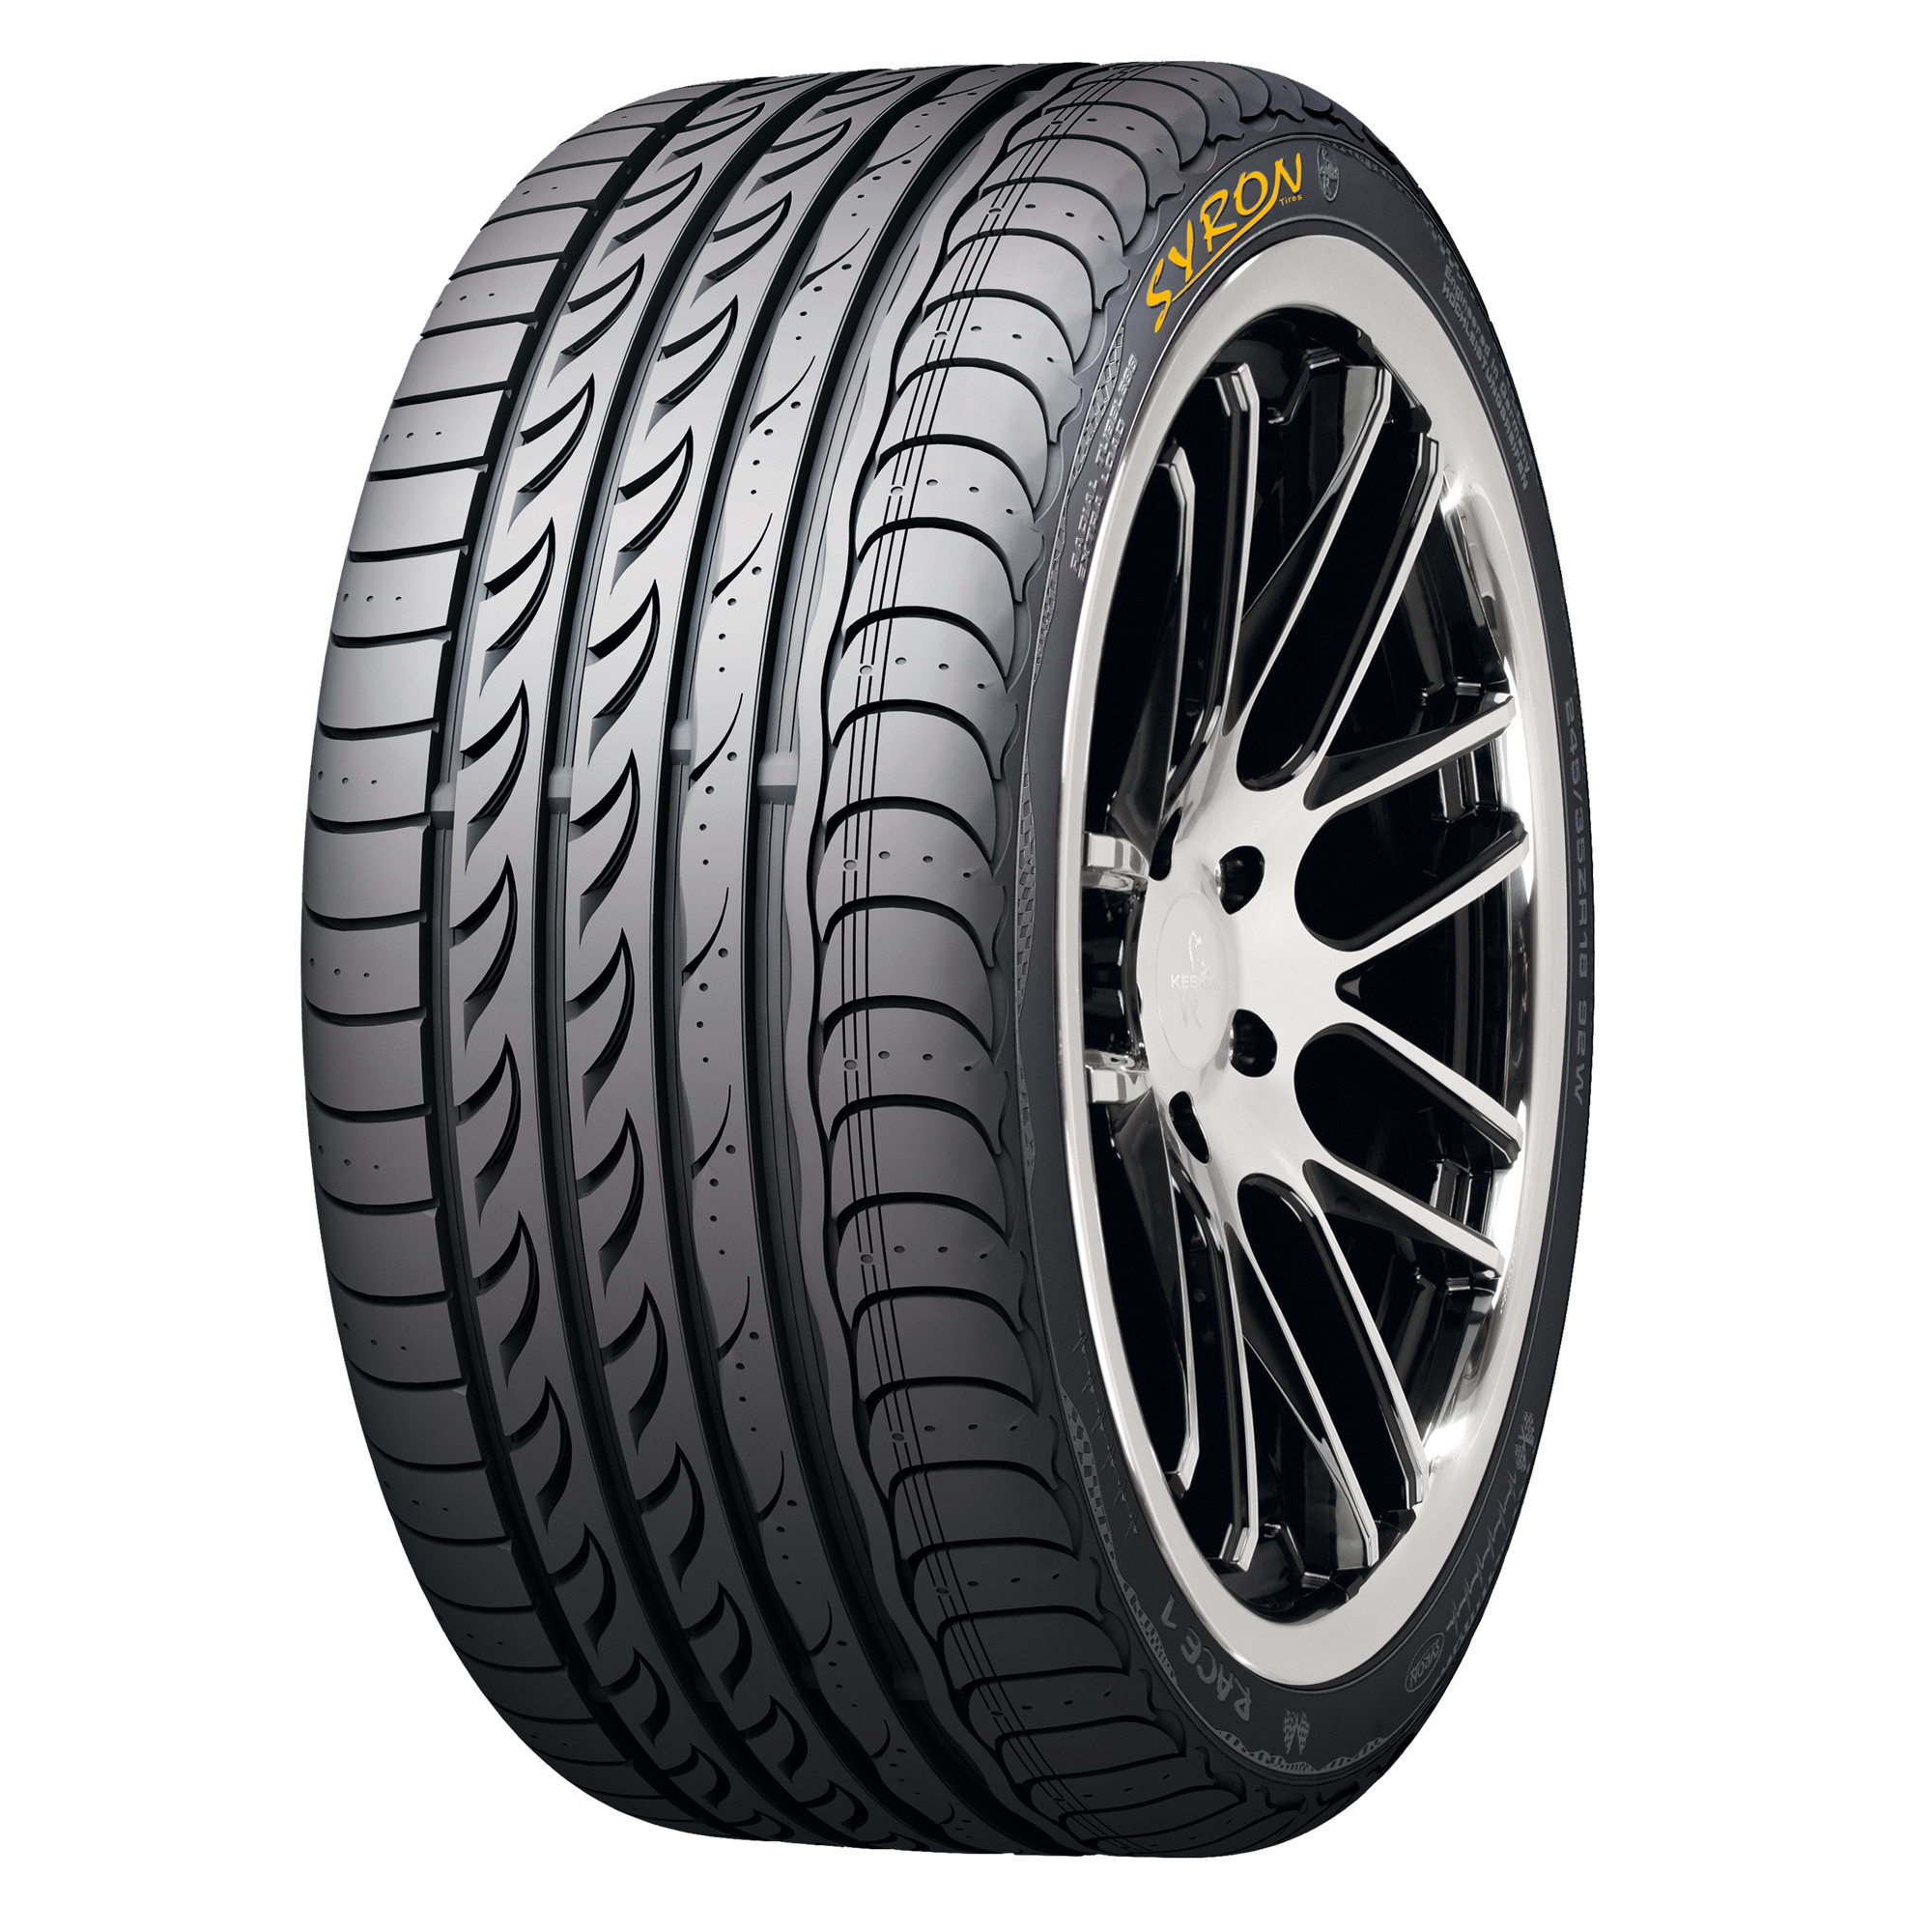 225/50R17 SYRON TIRES RACE1 X 98W XL